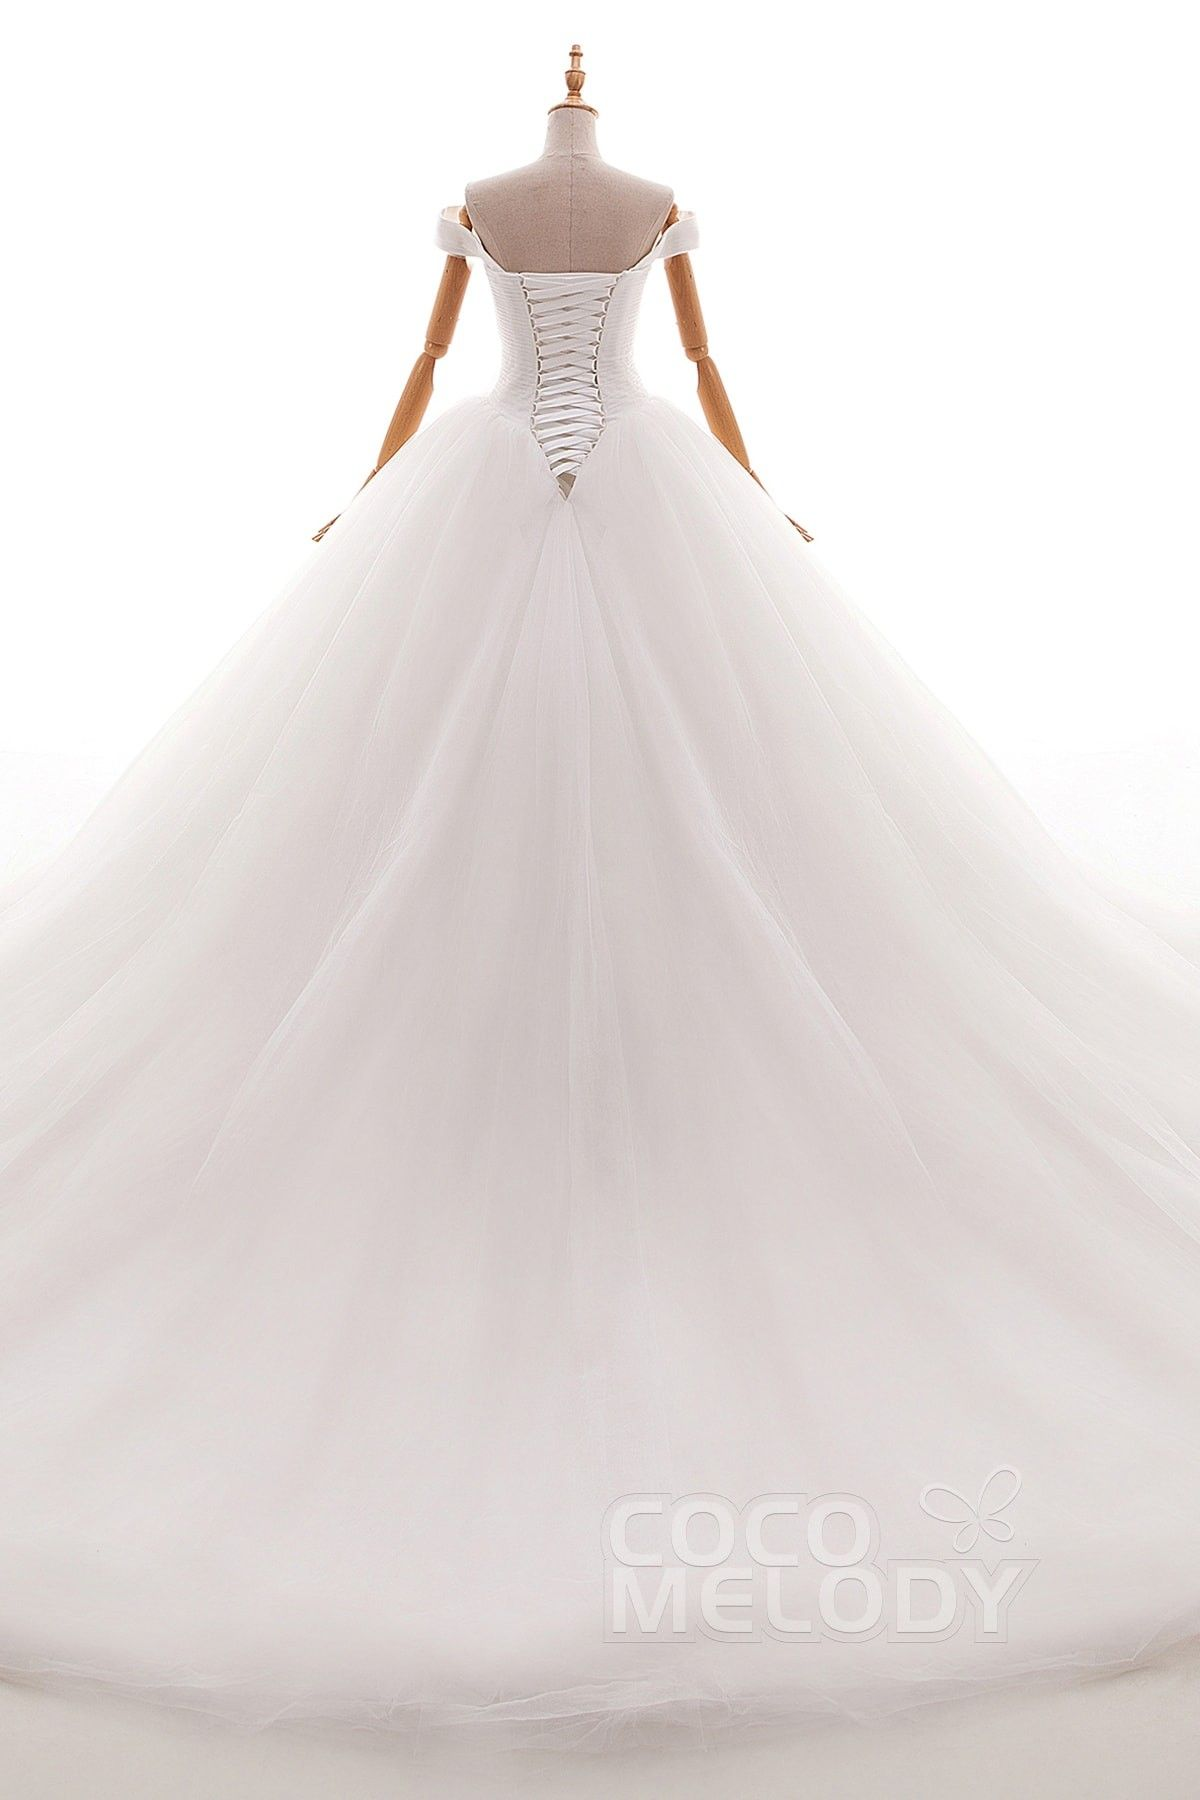 Usd 439 Ball Gown Chapel Train Tulle Wedding Dress Ld4561